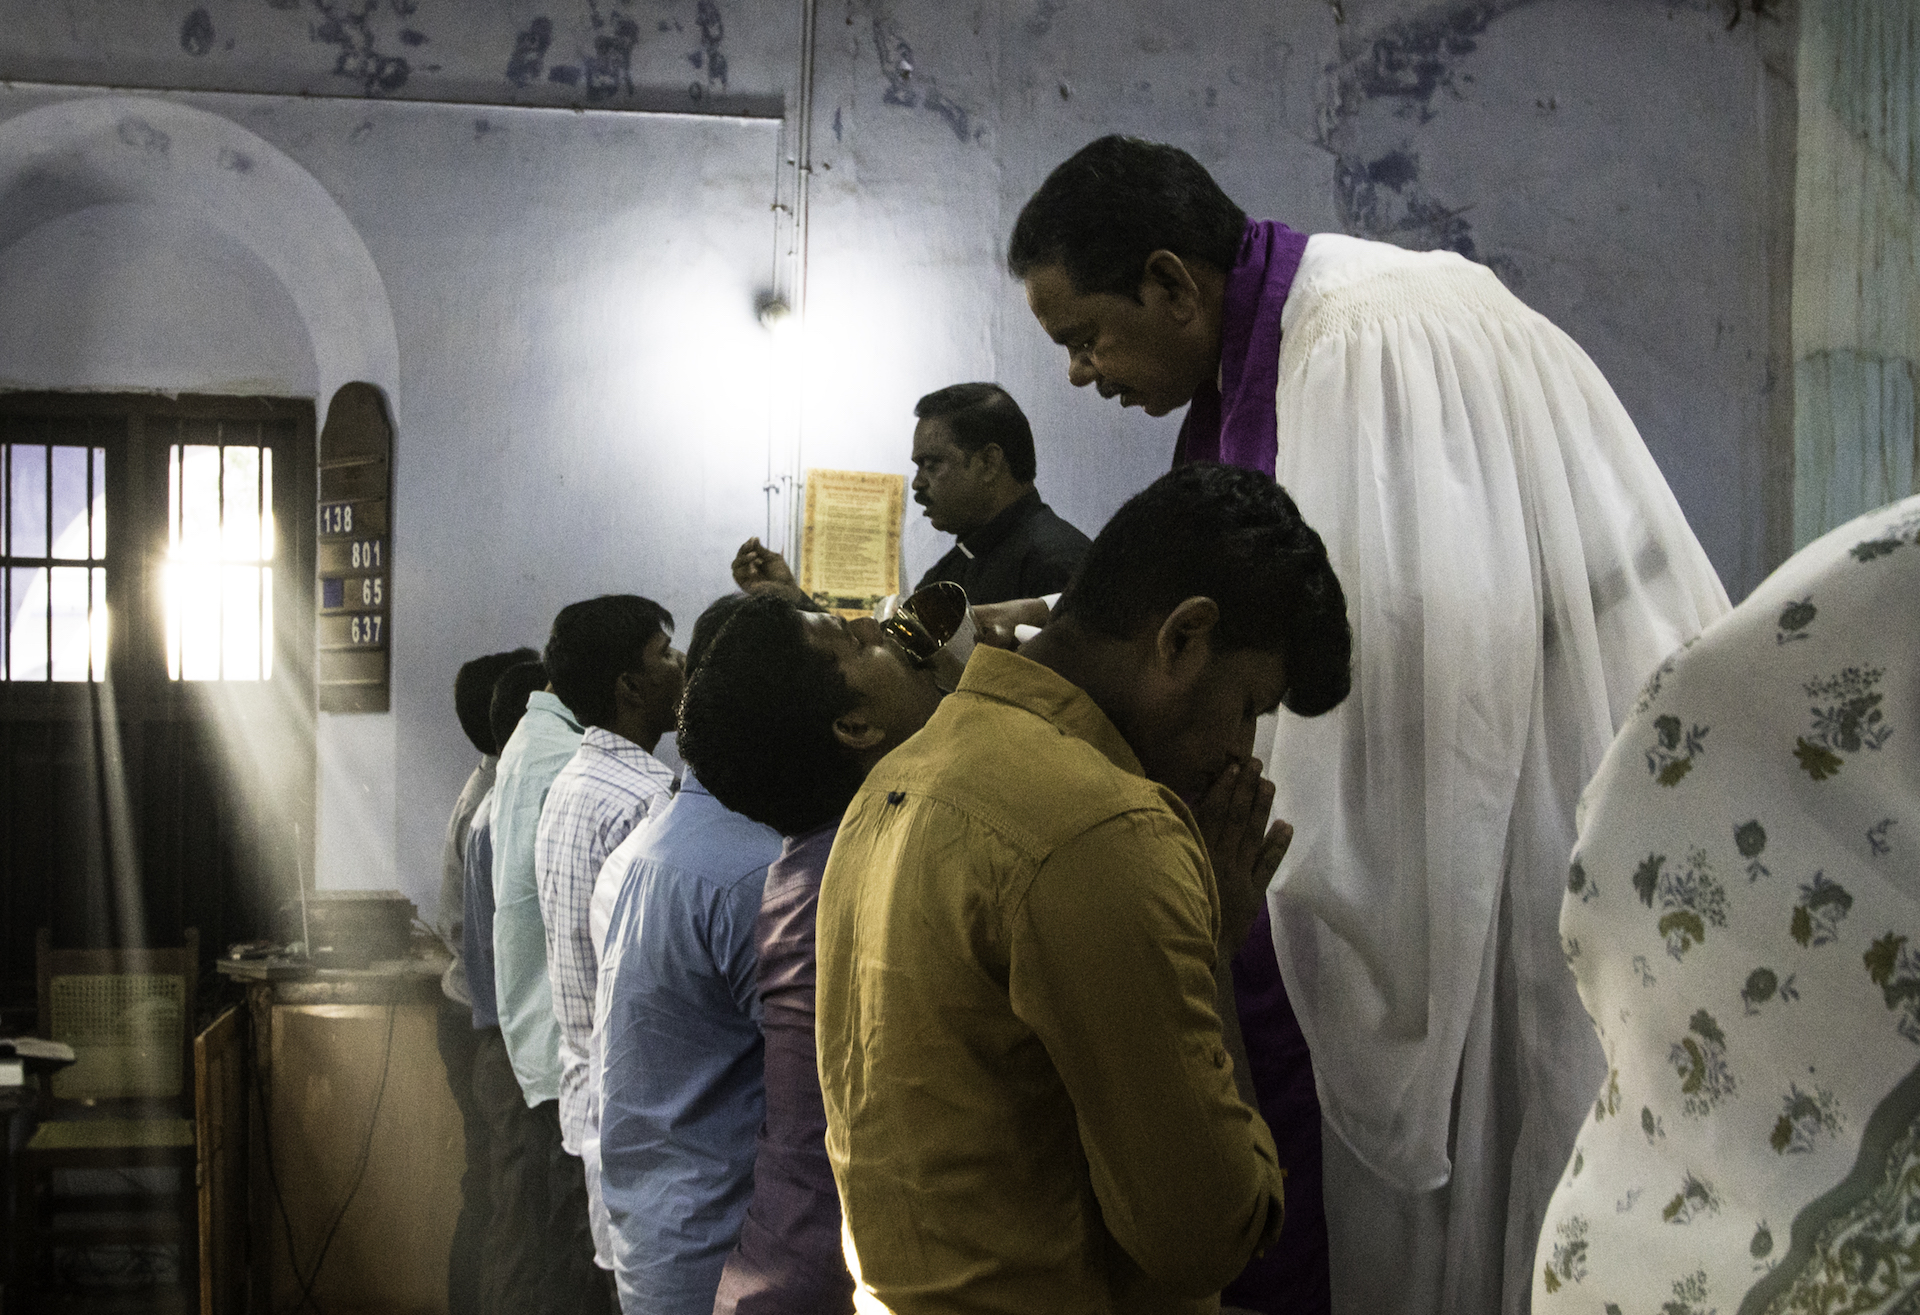 Rev. Christu Das, Principal of CTSN, distributes the Lord's Supper during weekly Divine Service at CTSN.Johanna Heidorn, photographer